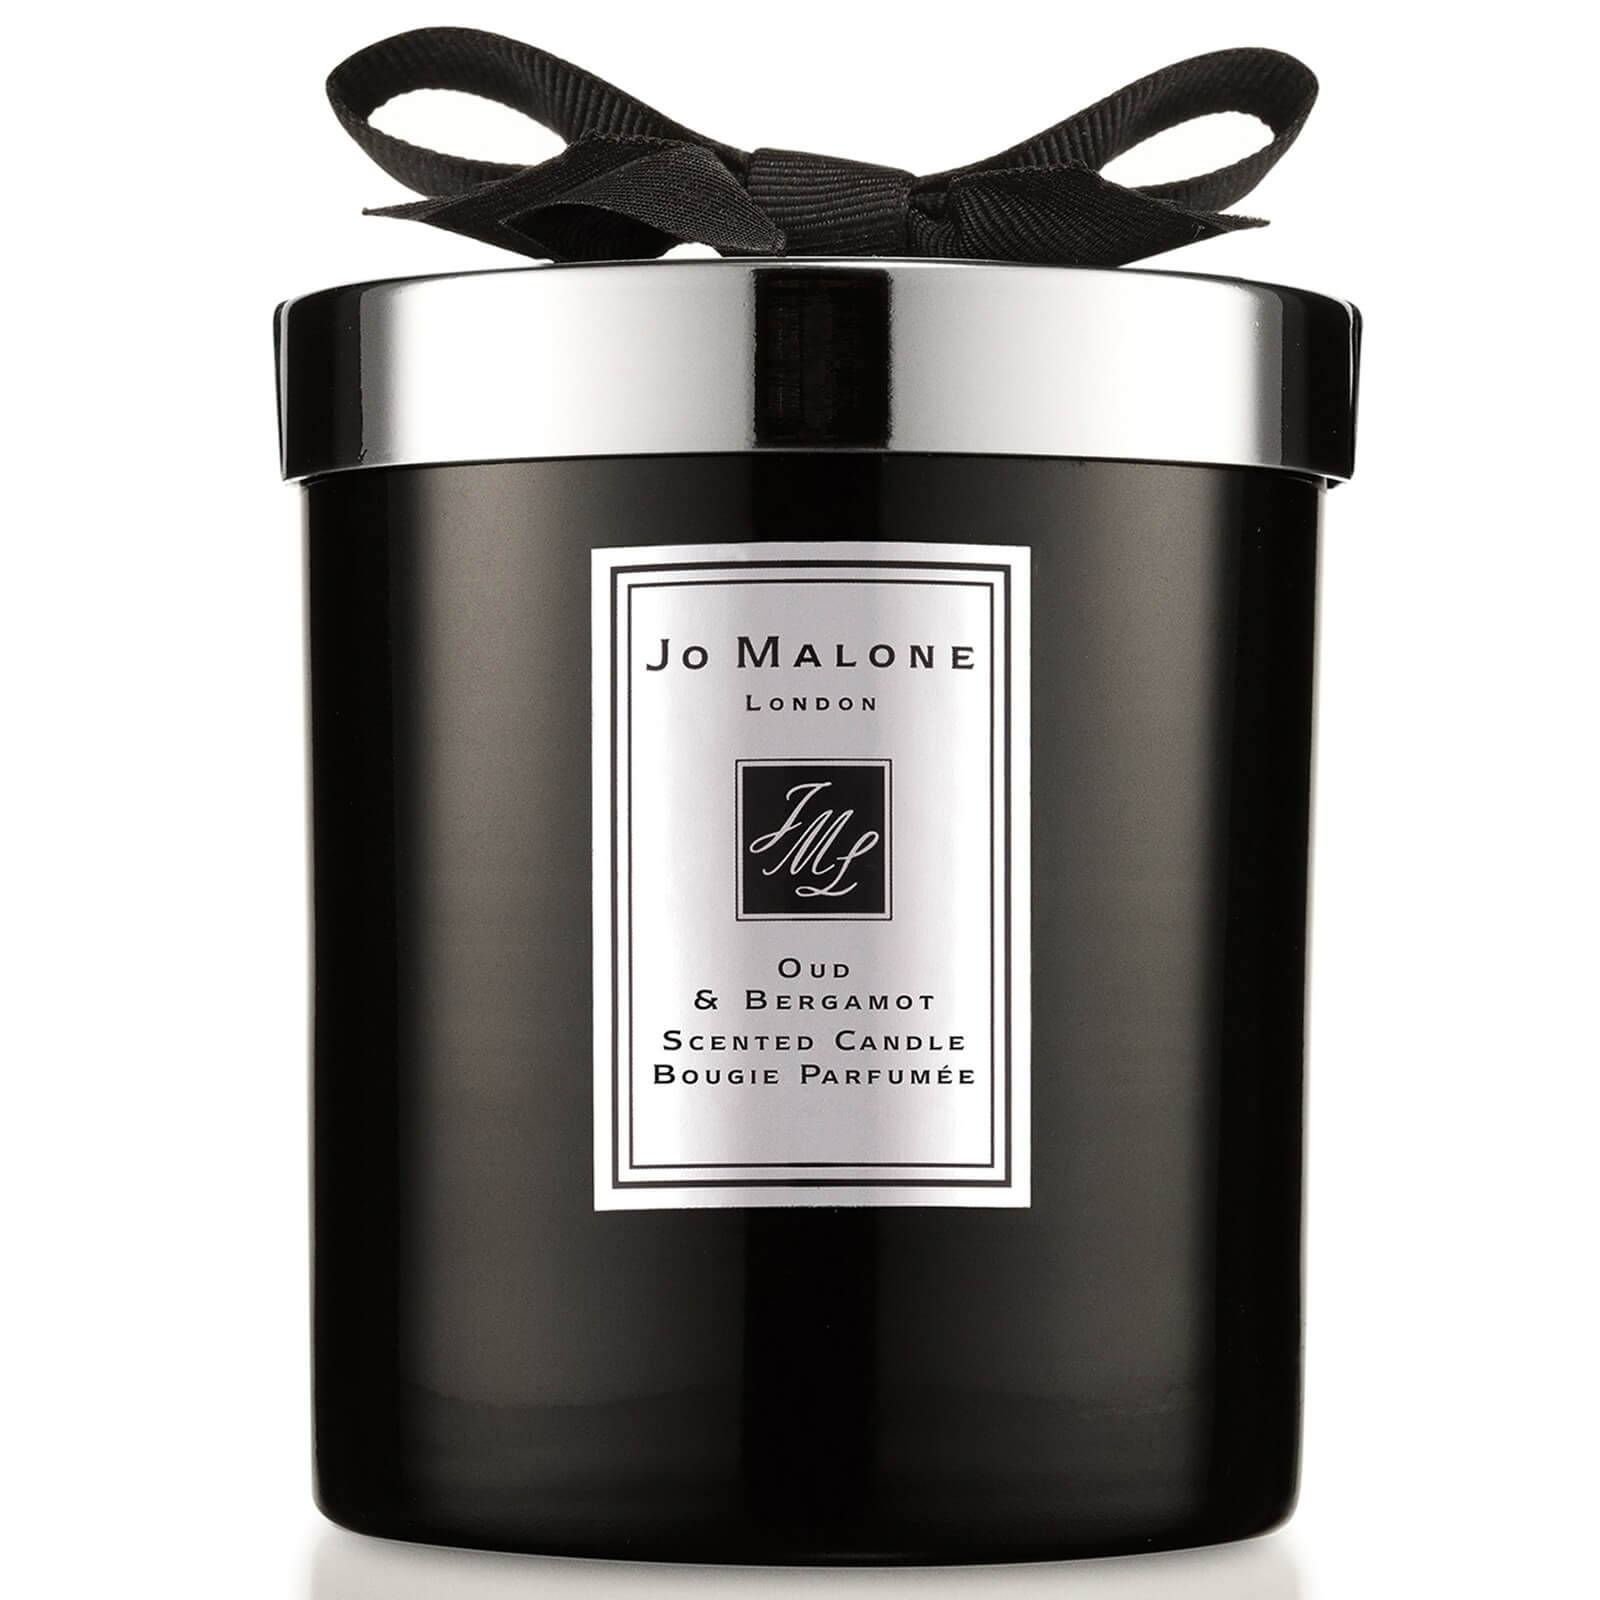 Jo Malone London Cologne Intense Oud and Bergamot Home Candle 200g